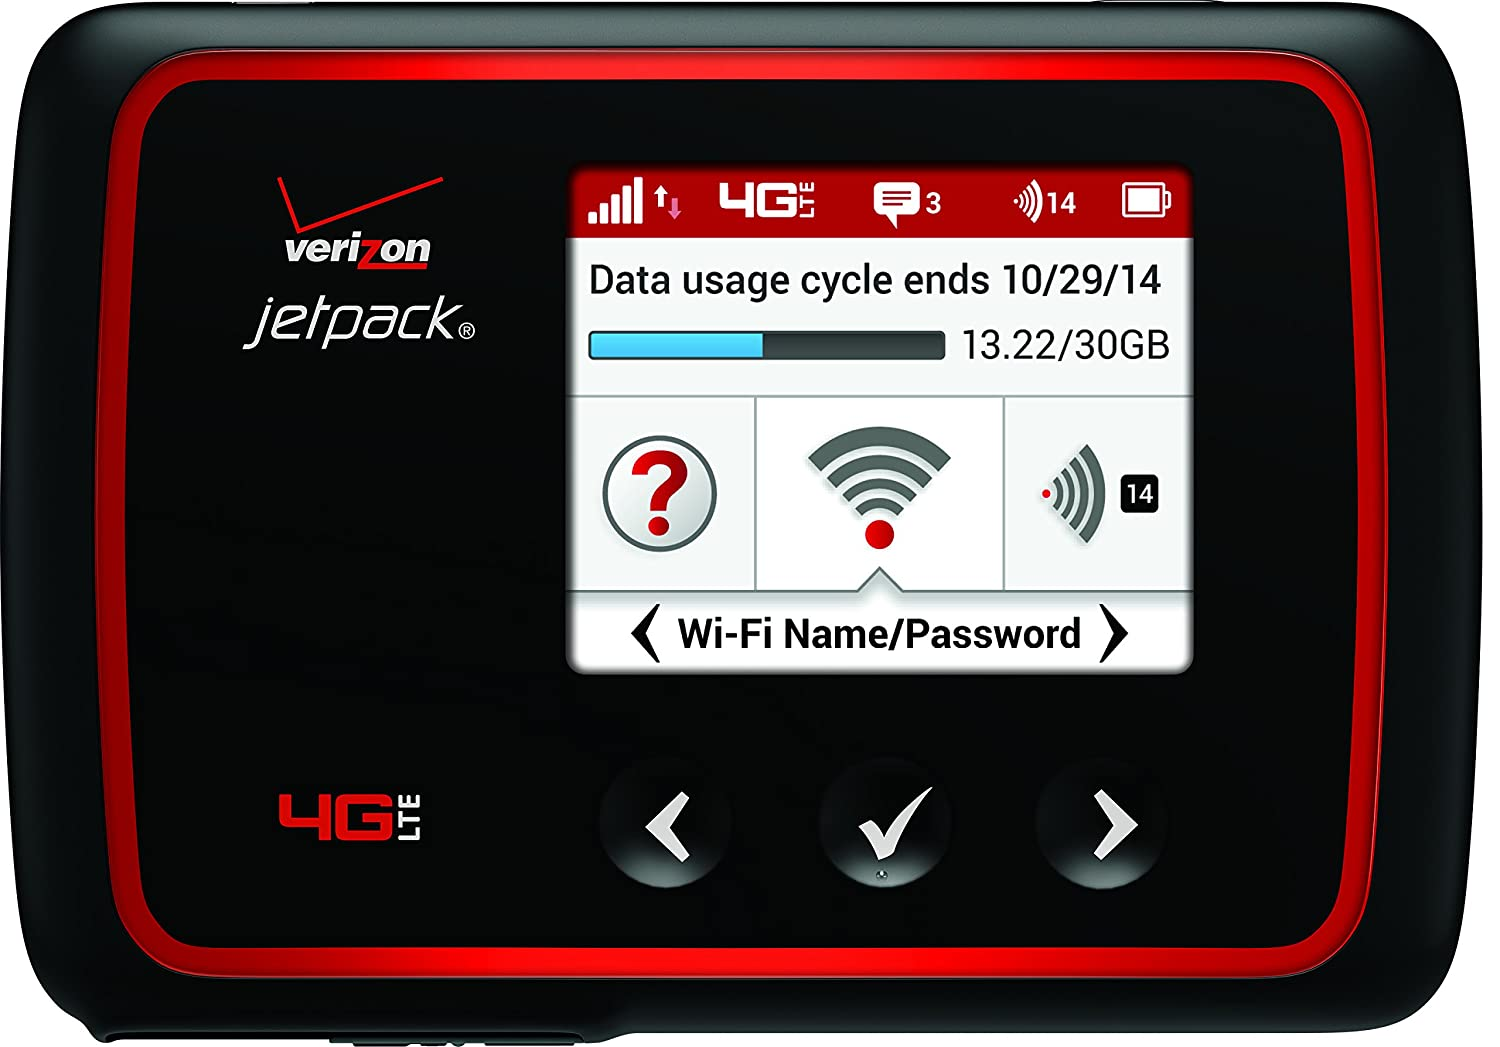 B00NTJKAXG Verizon MiFi 6620L Jetpack 4G LTE Mobile Hotspot (Verizon Wireless) 81vEsM235cL._SL1500_